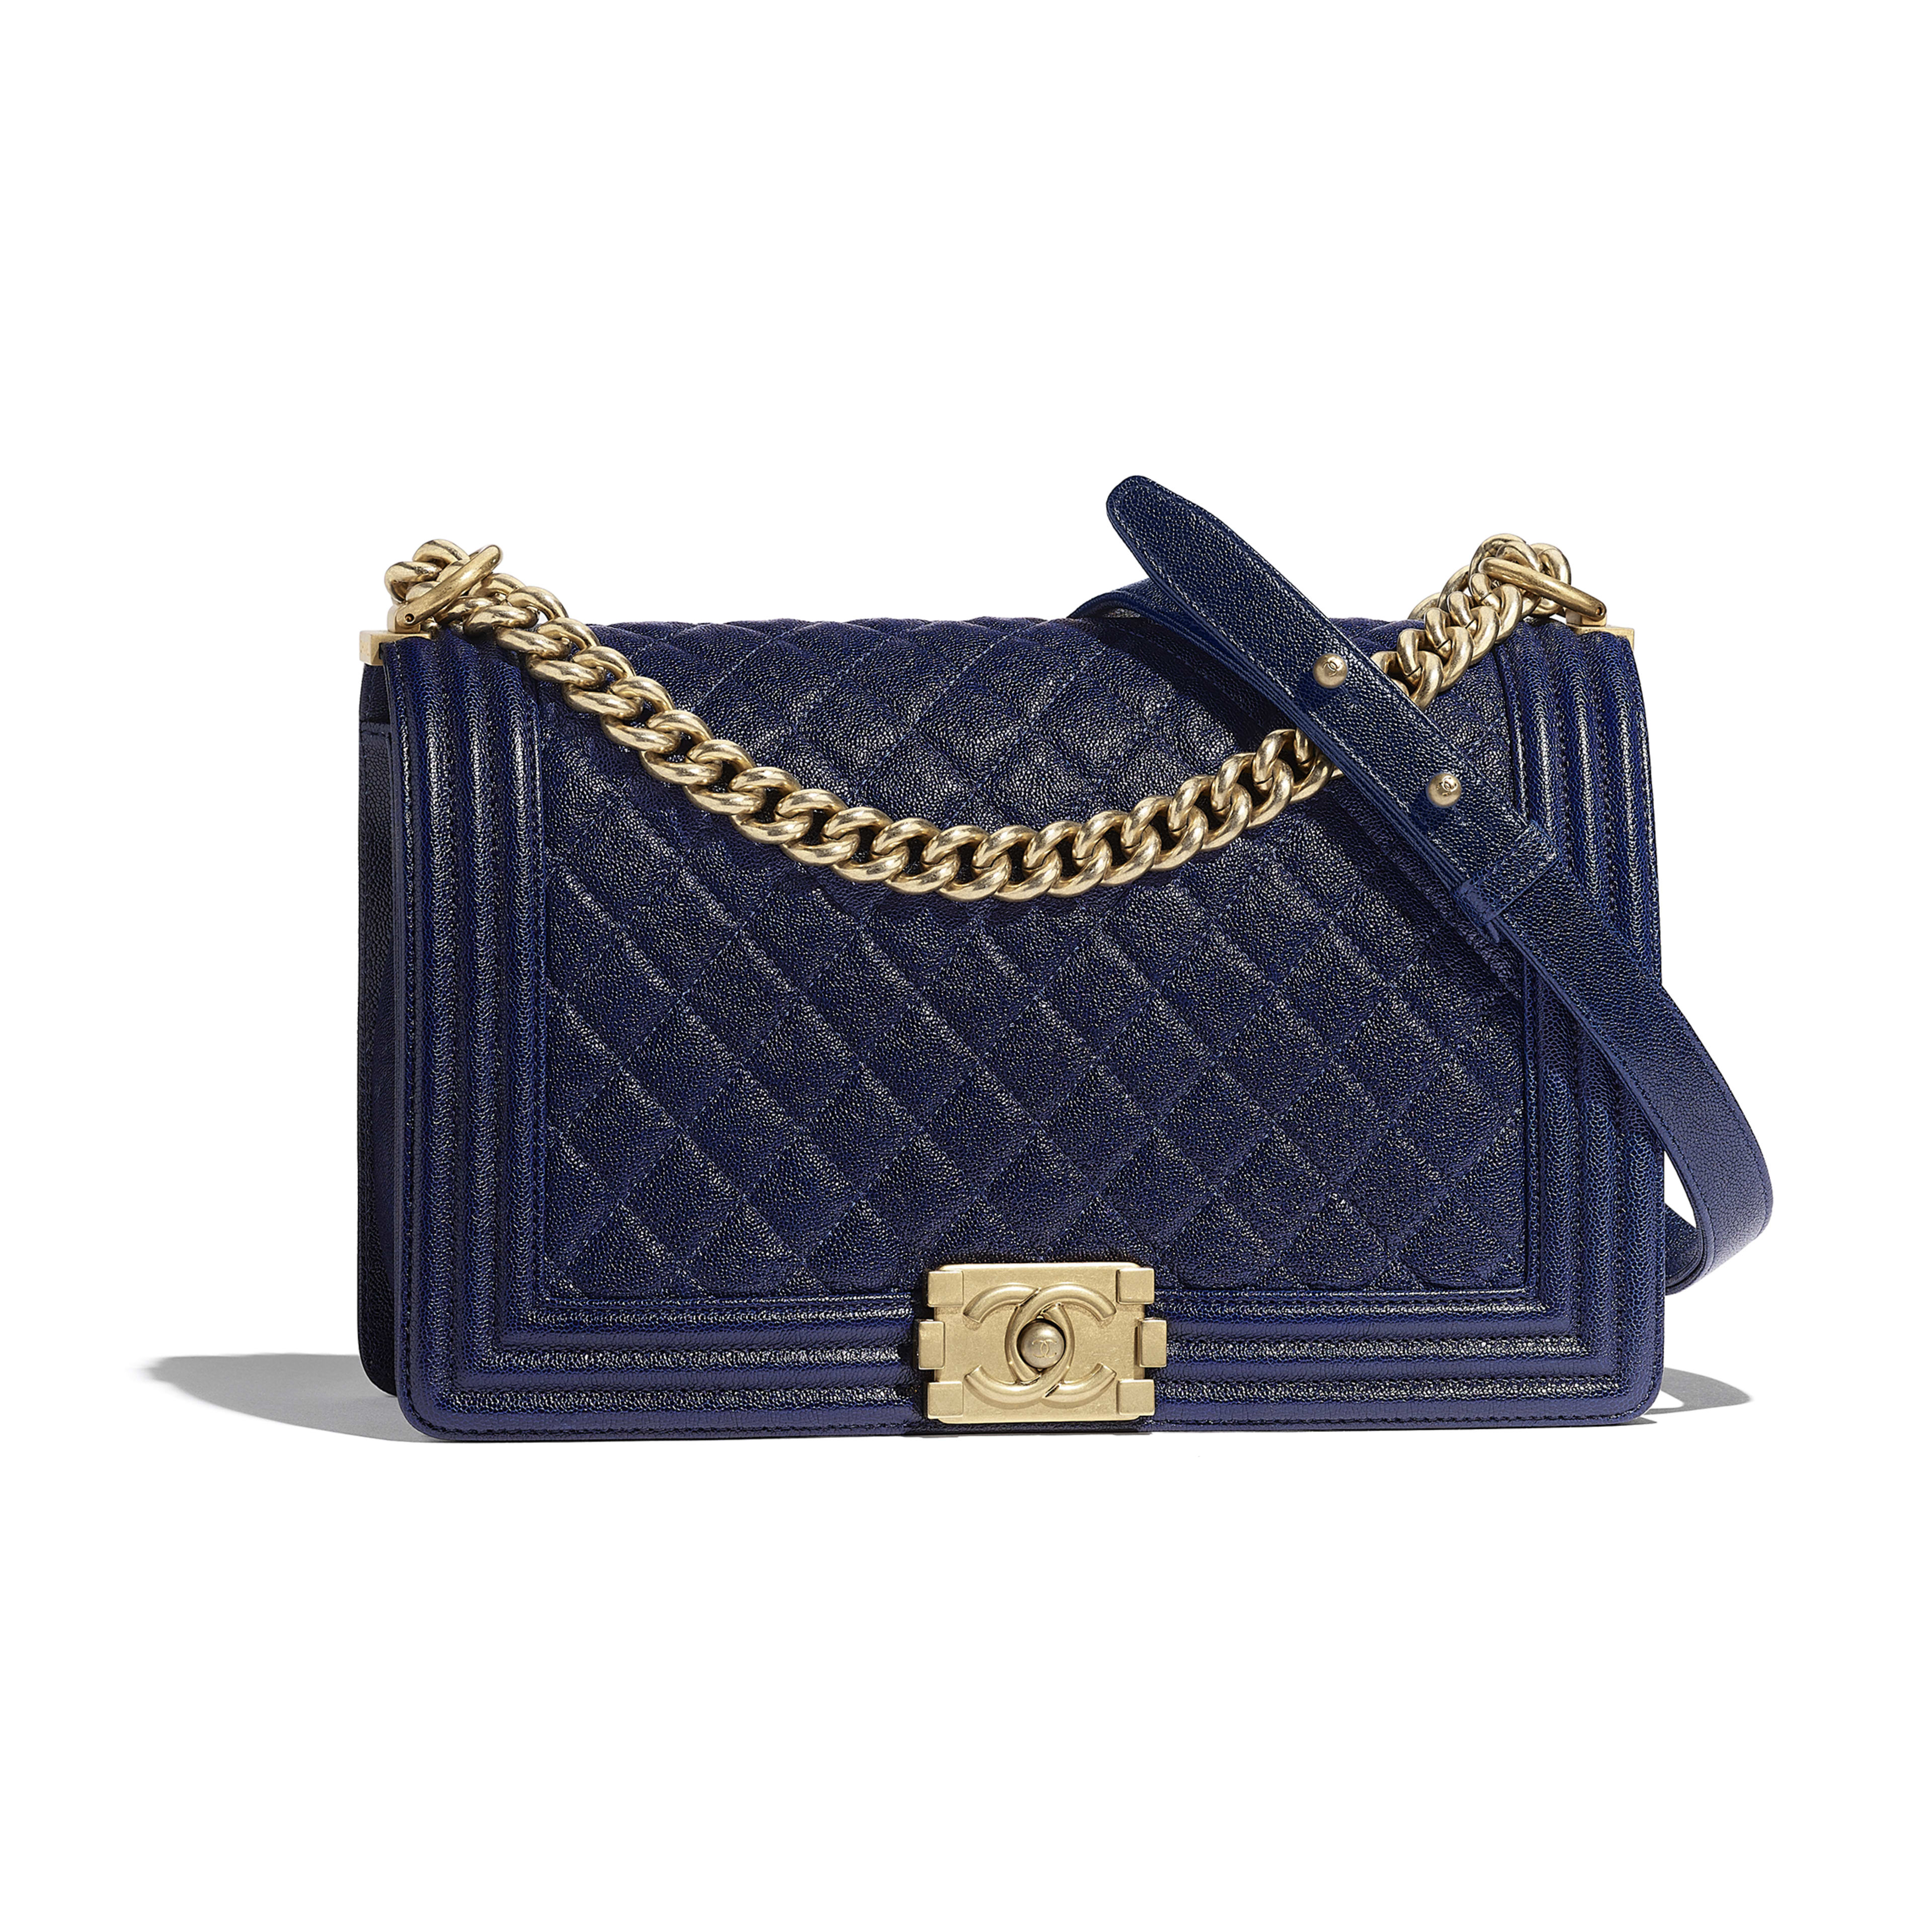 Large BOY CHANEL Handbag - Blue - Grained Calfskin & Gold-Tone Metal - Default view - see full sized version